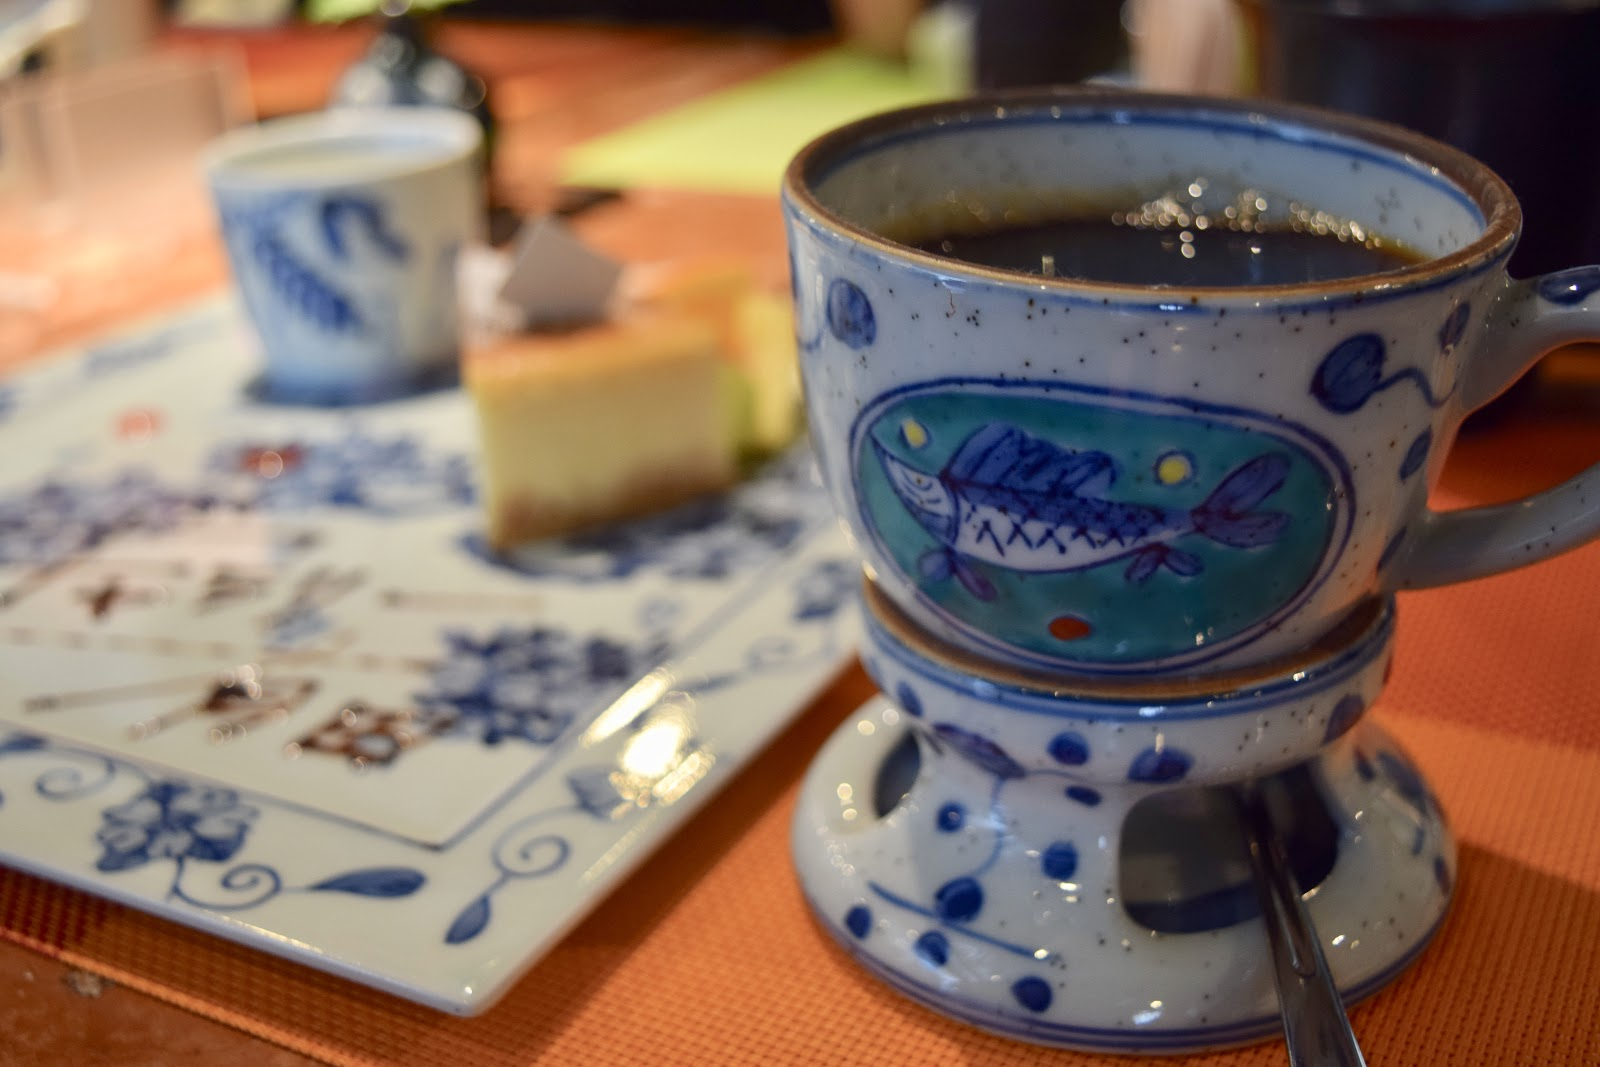 Picture of the author's cup and saucer combination; blue porcelain